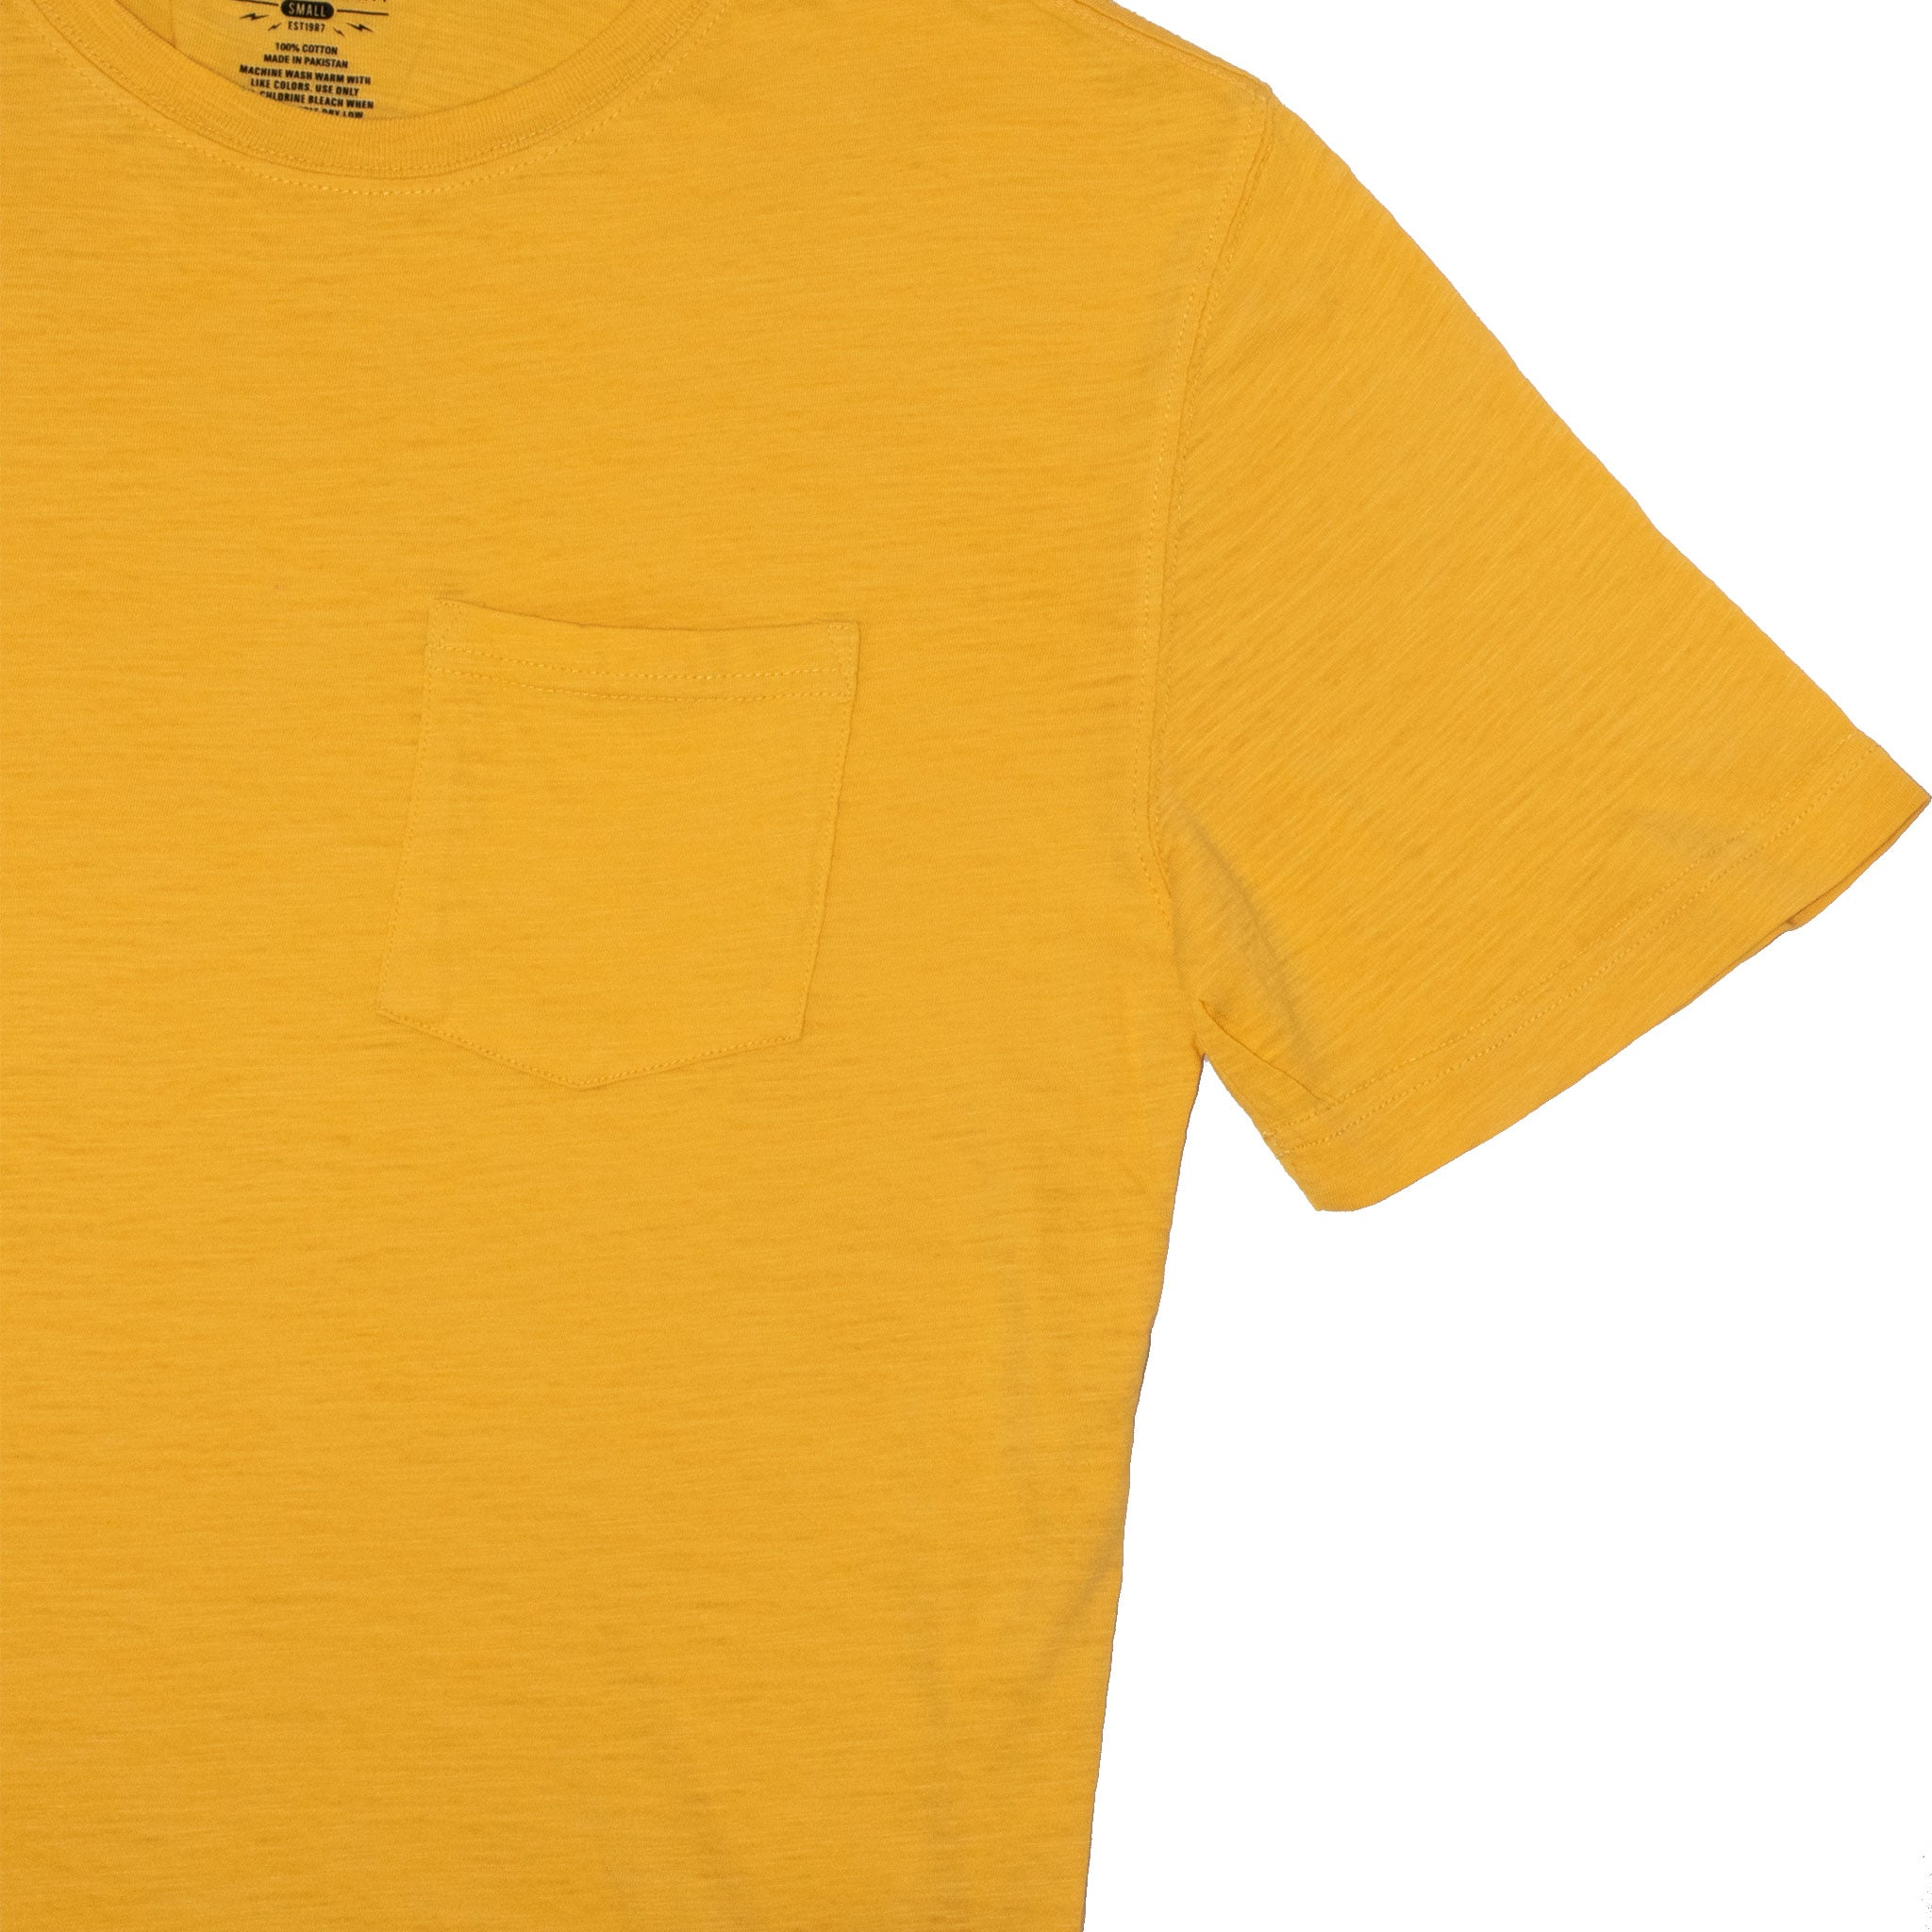 MEN'S POCKET TEE-YELLOW - Export Mall